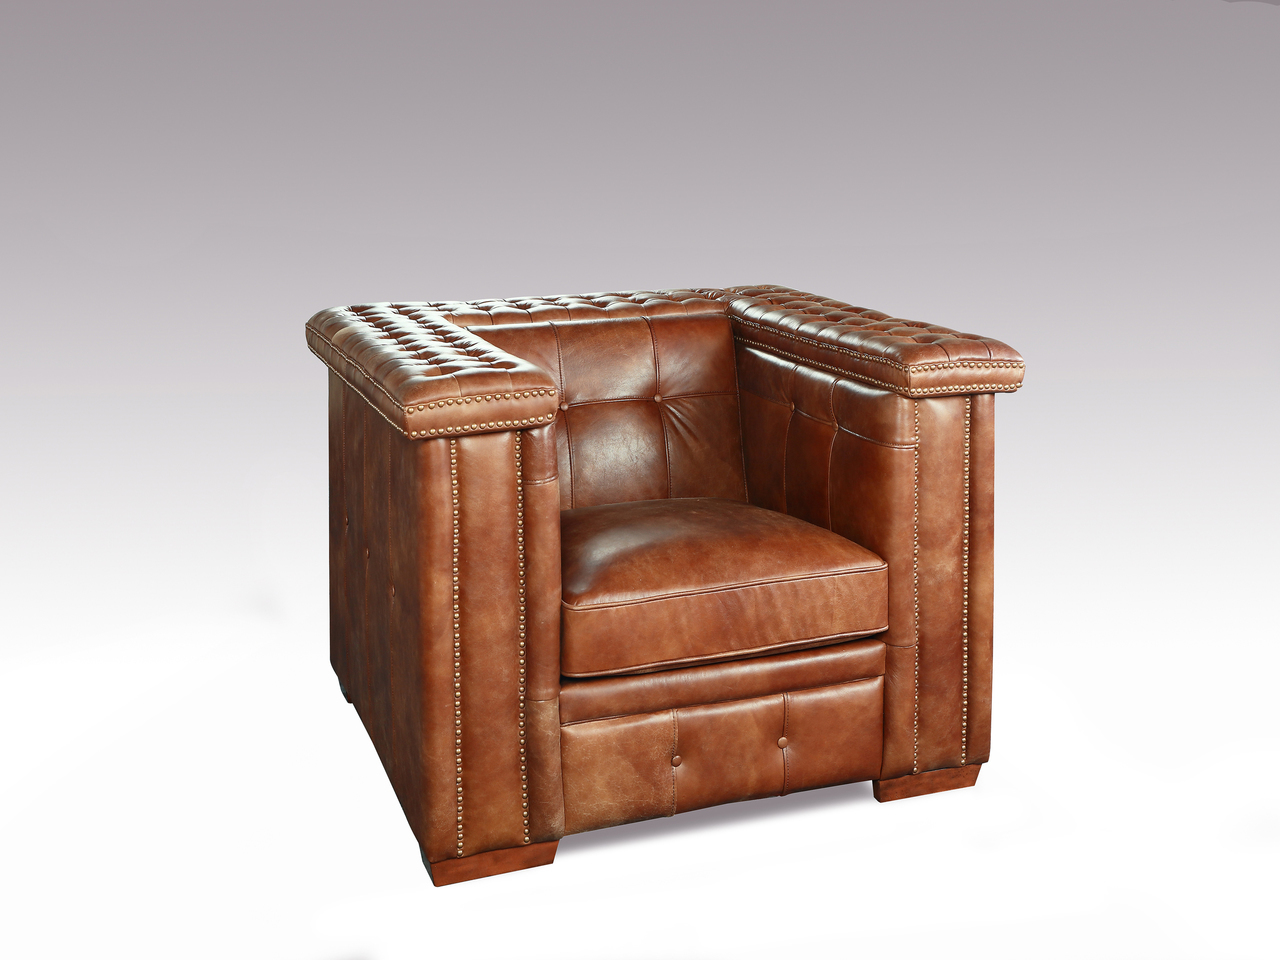 Home · Seating; Derbyshire Chair. Image 1